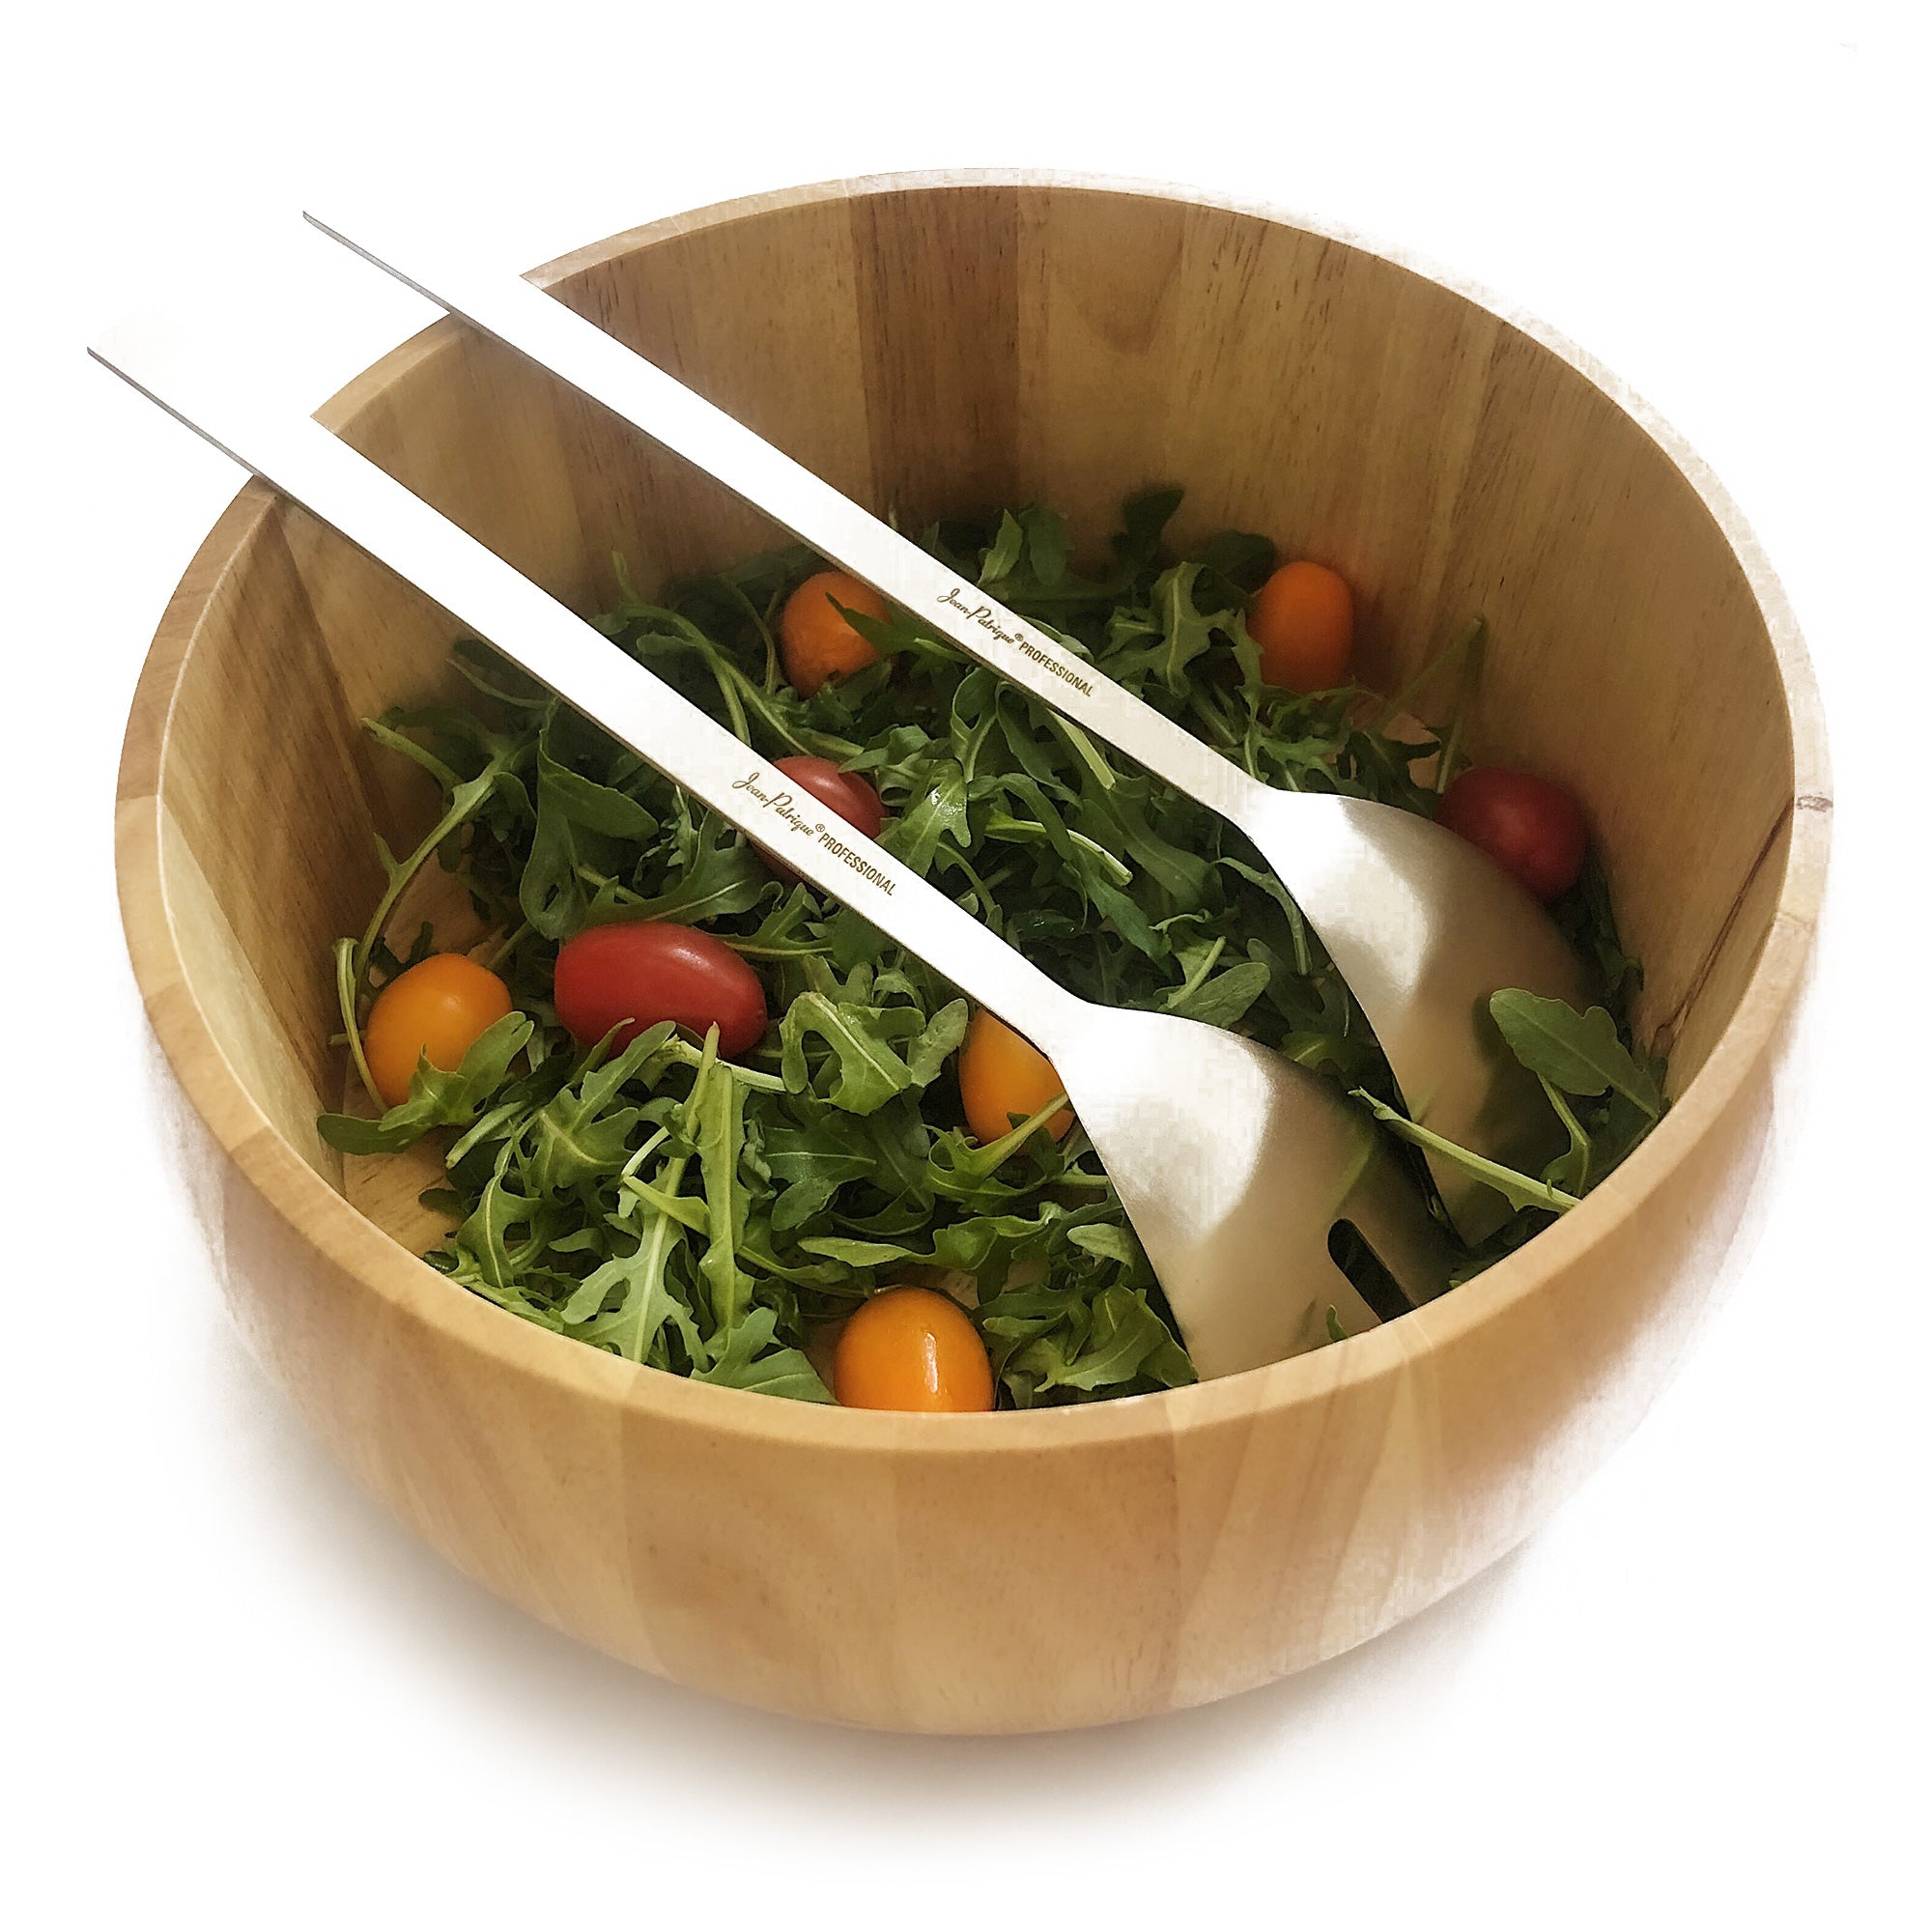 Family-Size Salad Bowl & S/S Salad Serve